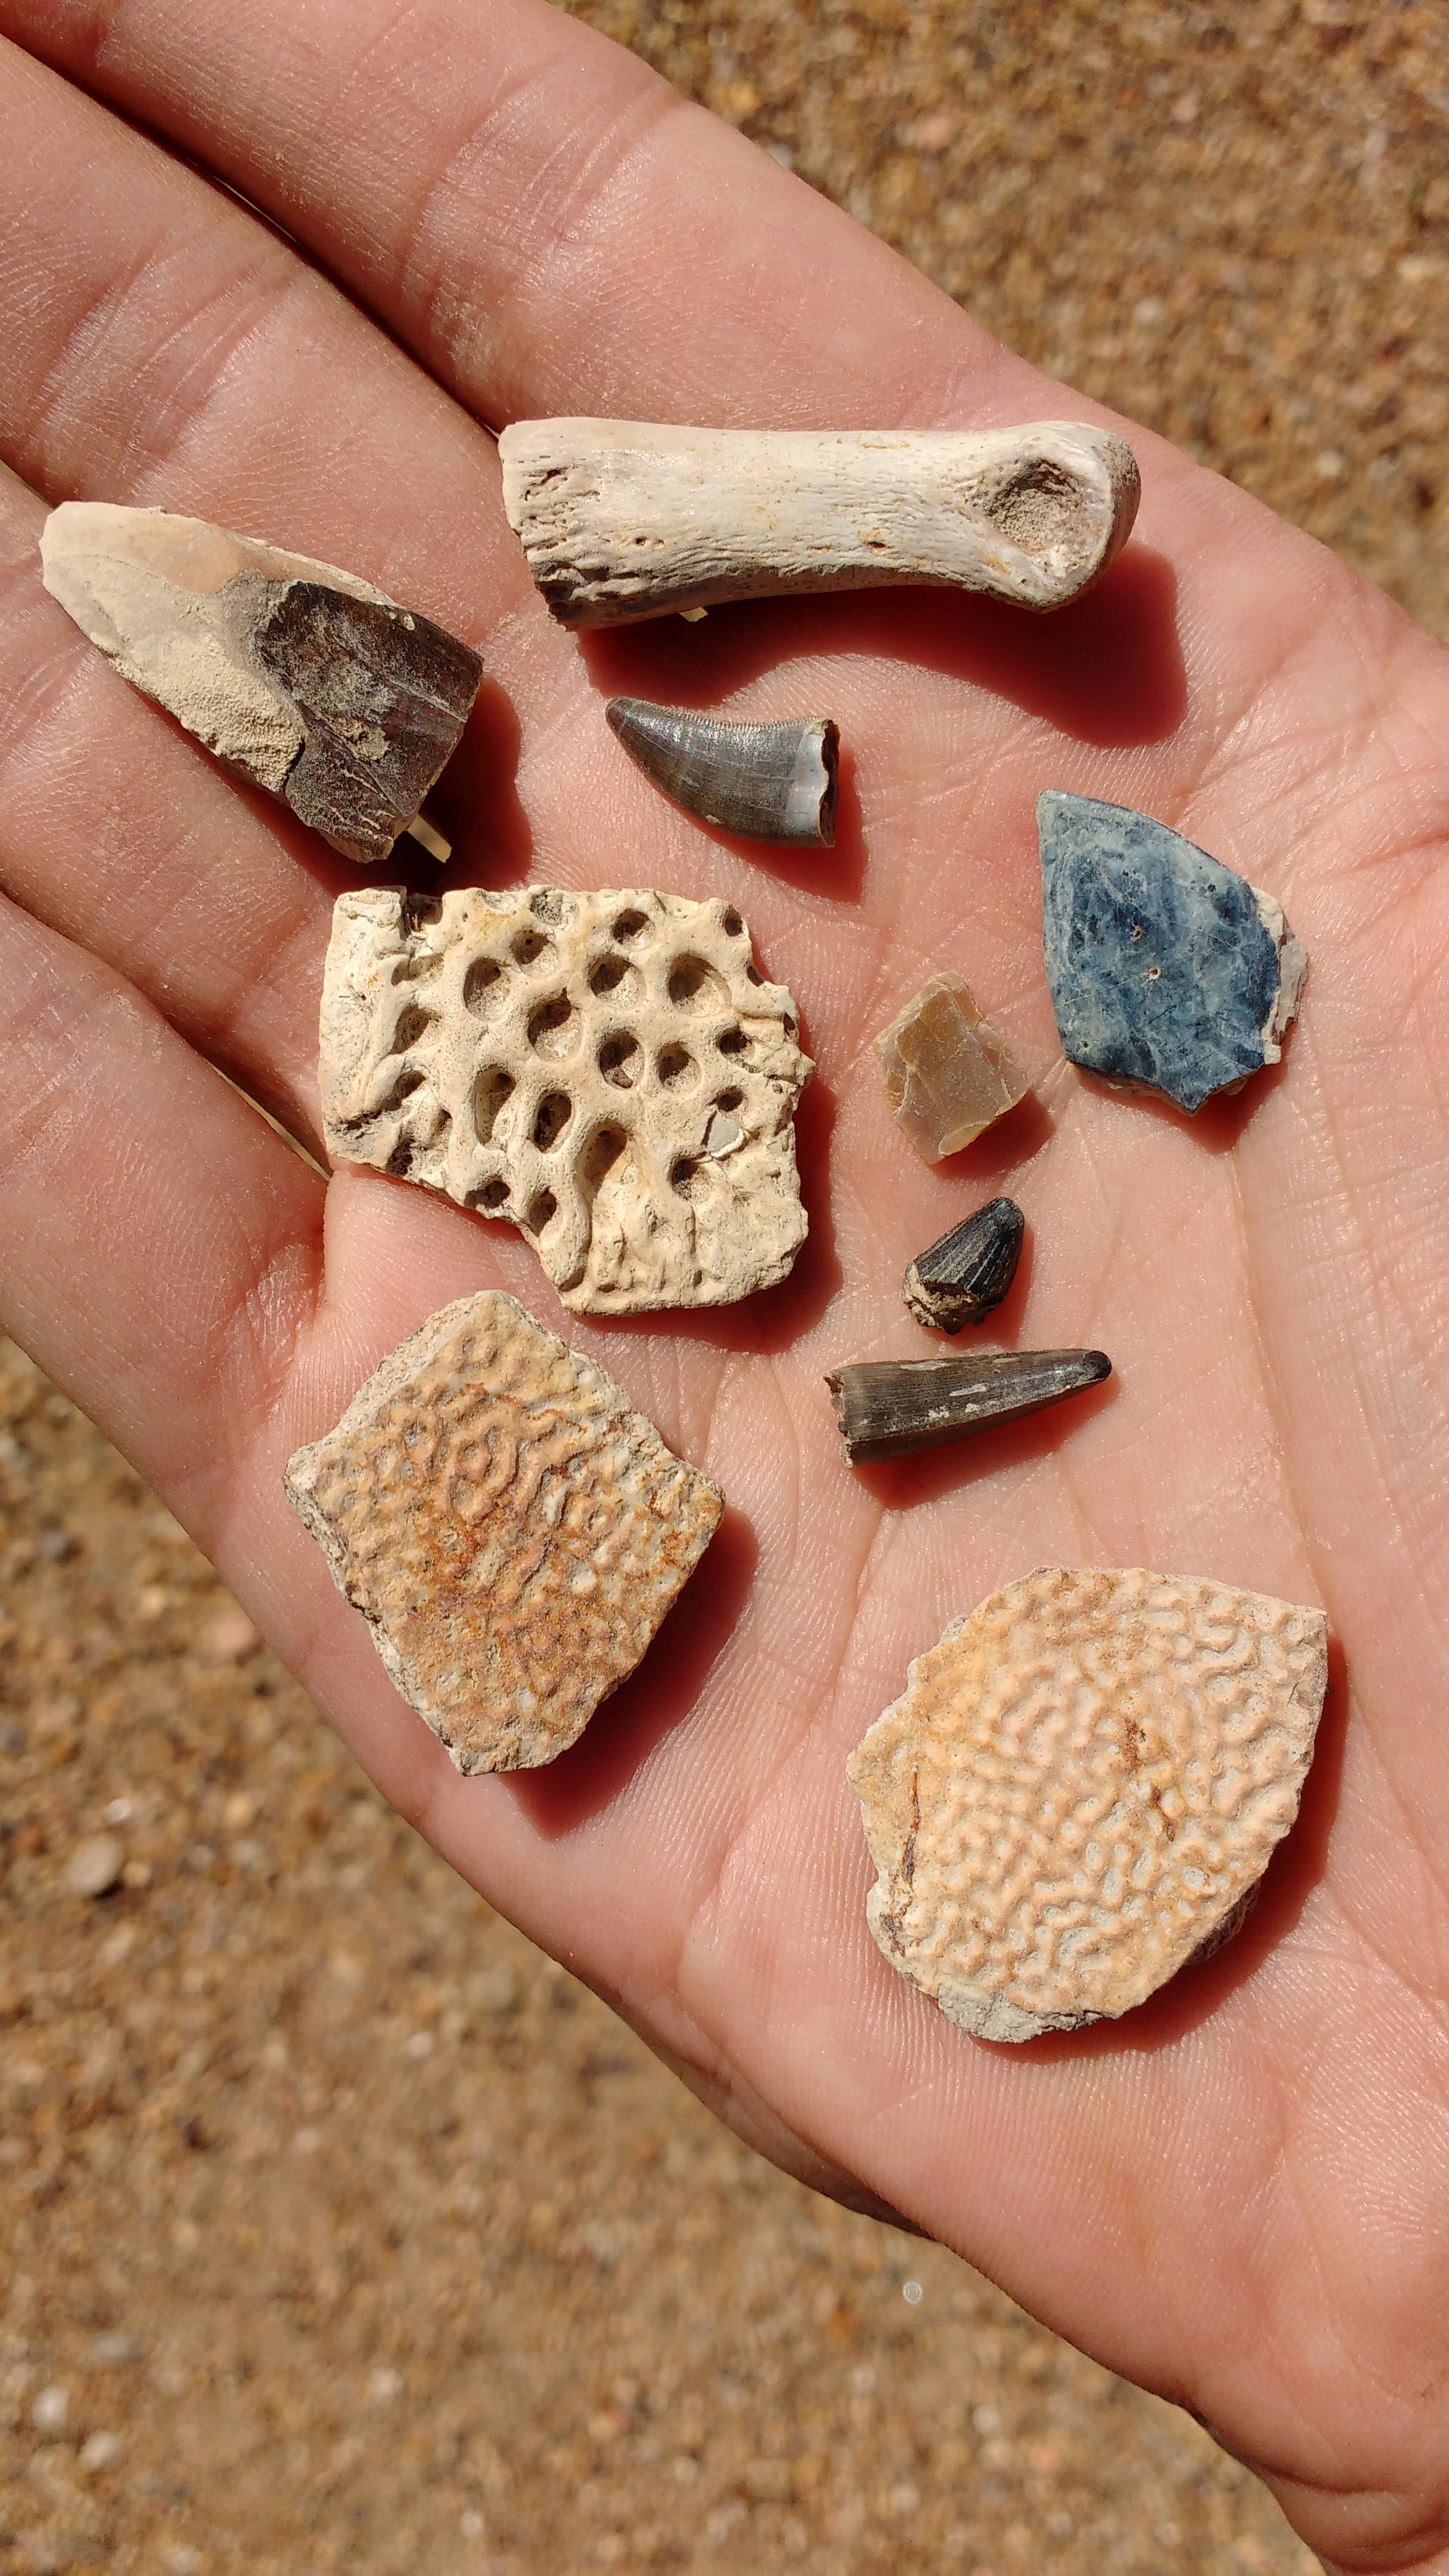 Teeth, bones, and scales found on the surface of a microsite in the Hell Creek Formation near Marmarth, ND.